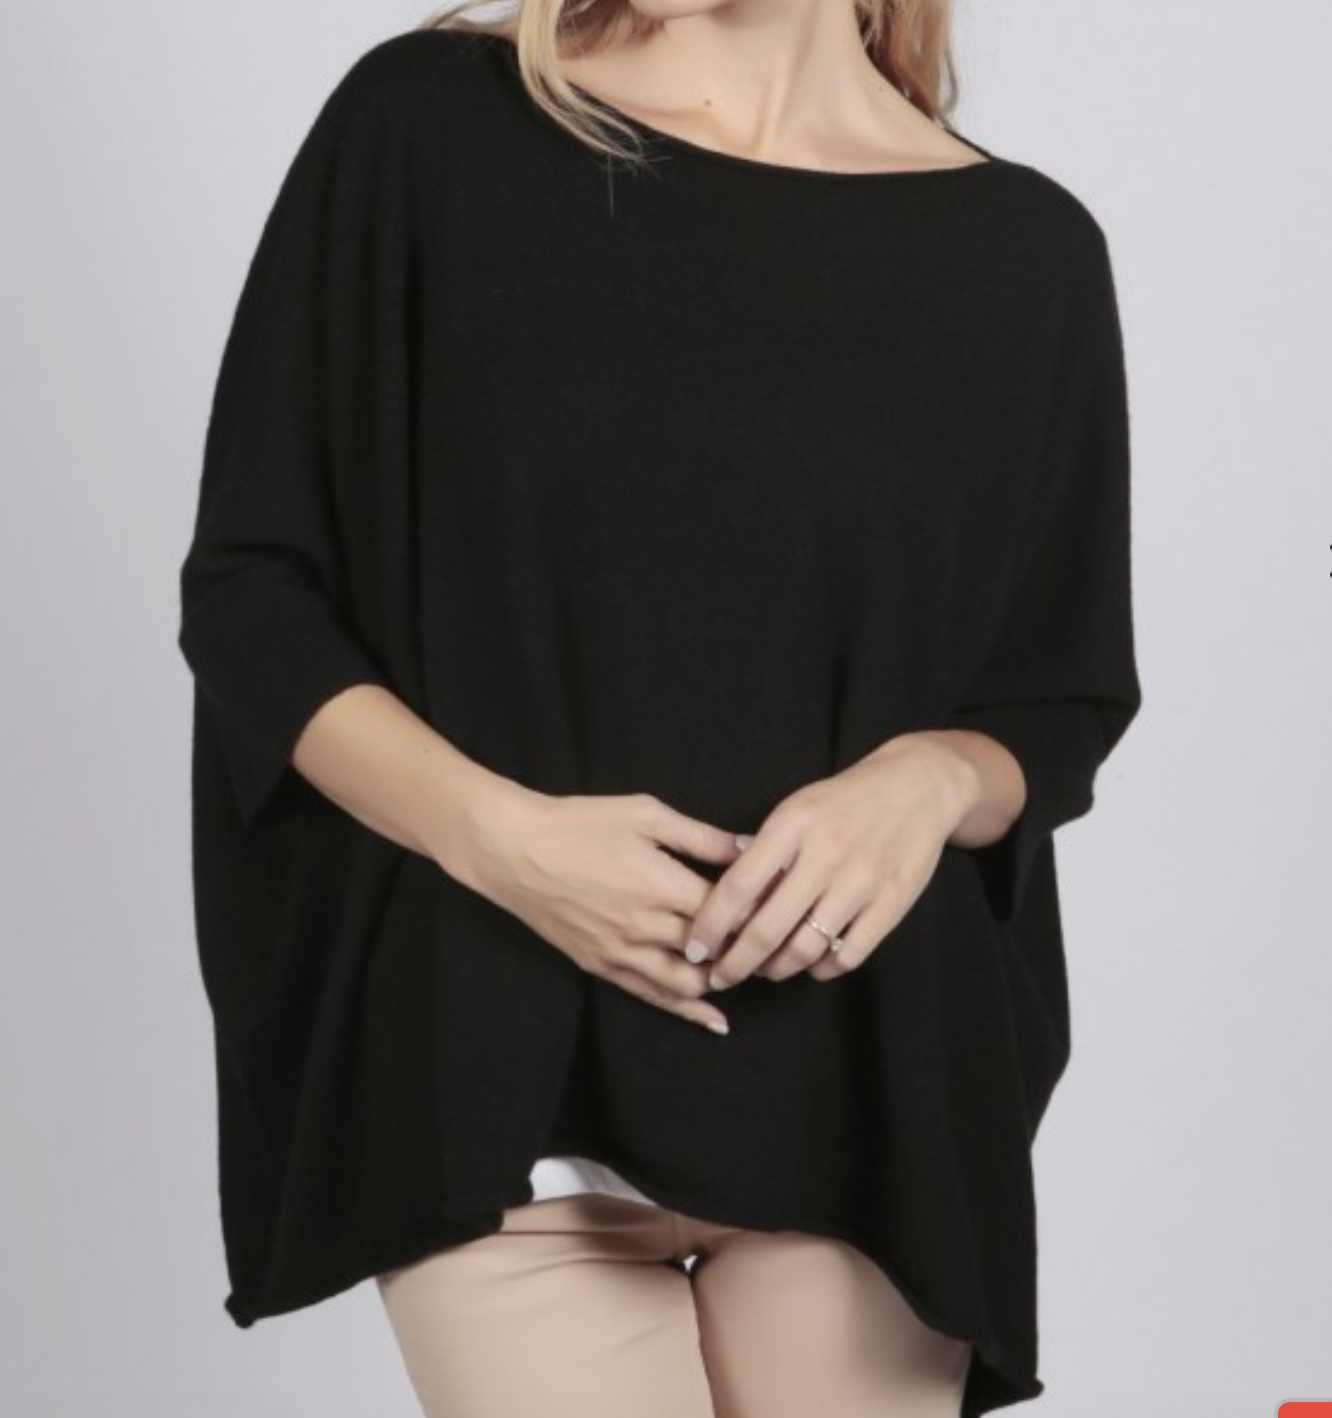 italy in cashmere black pure cashmere short sleeved oversized batwing sweater